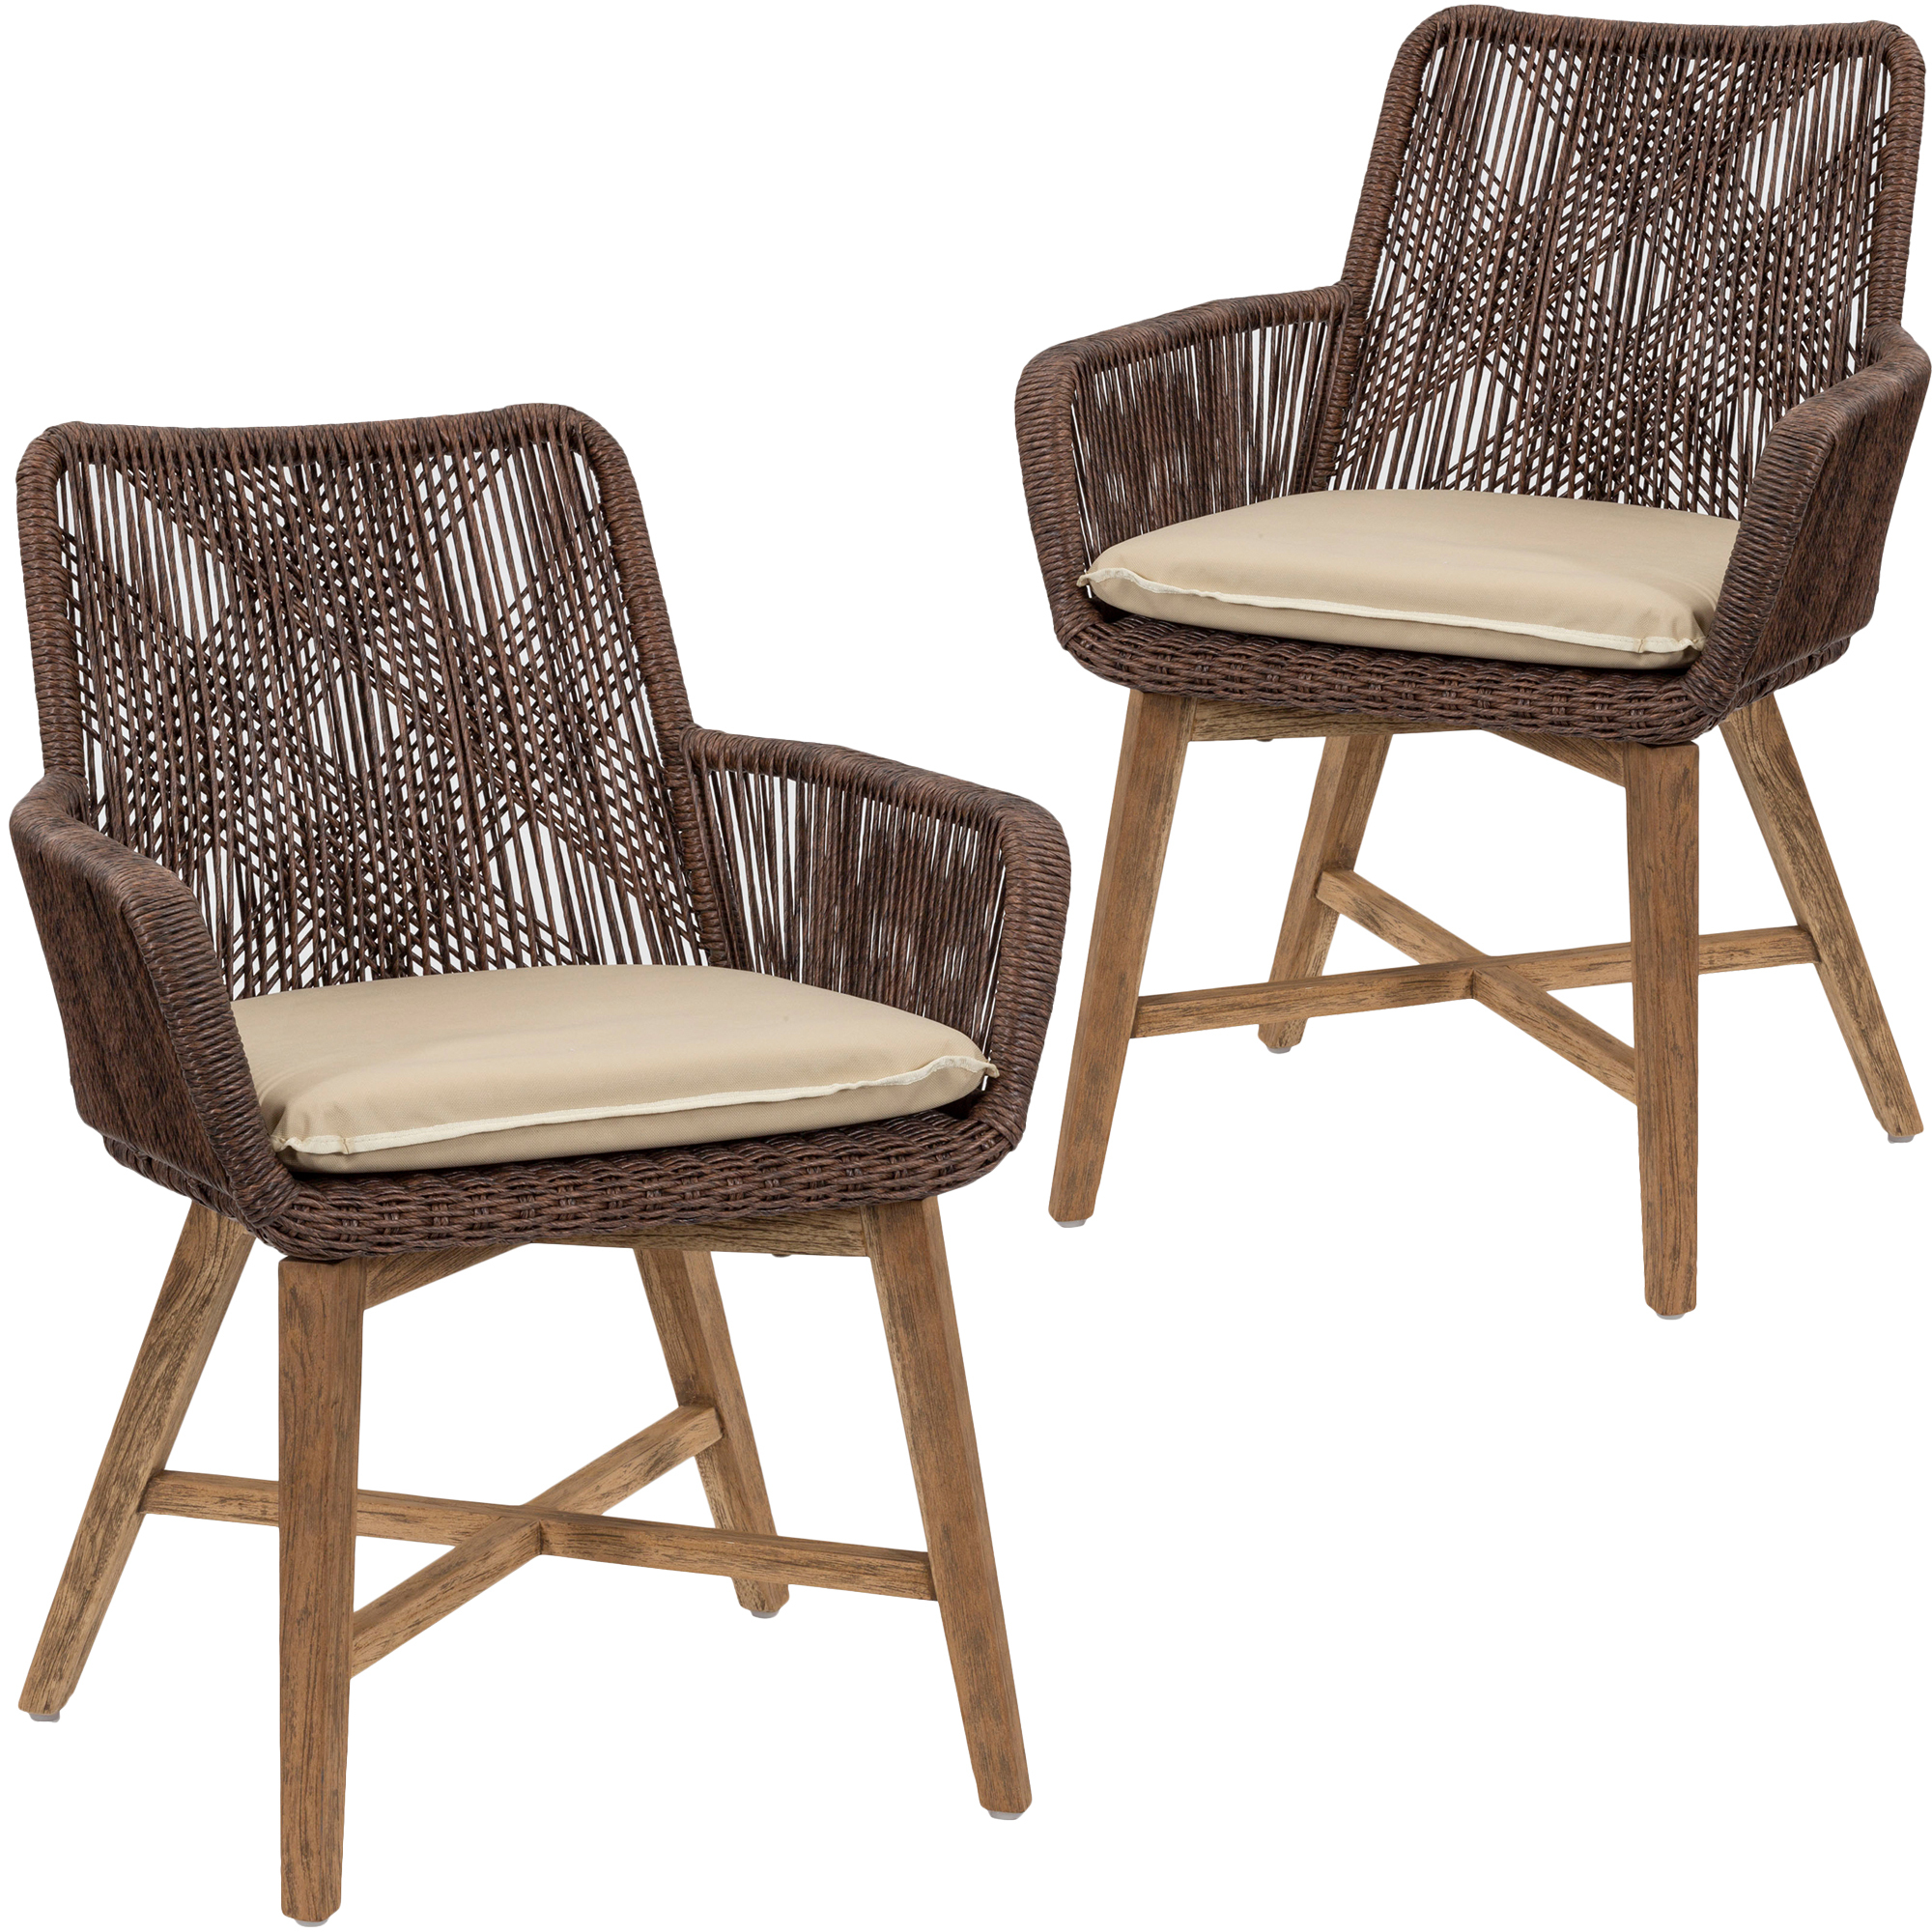 Wicker Outdoor Dining Chairs Brown Armena Pe Wicker Outdoor Dining Chairs